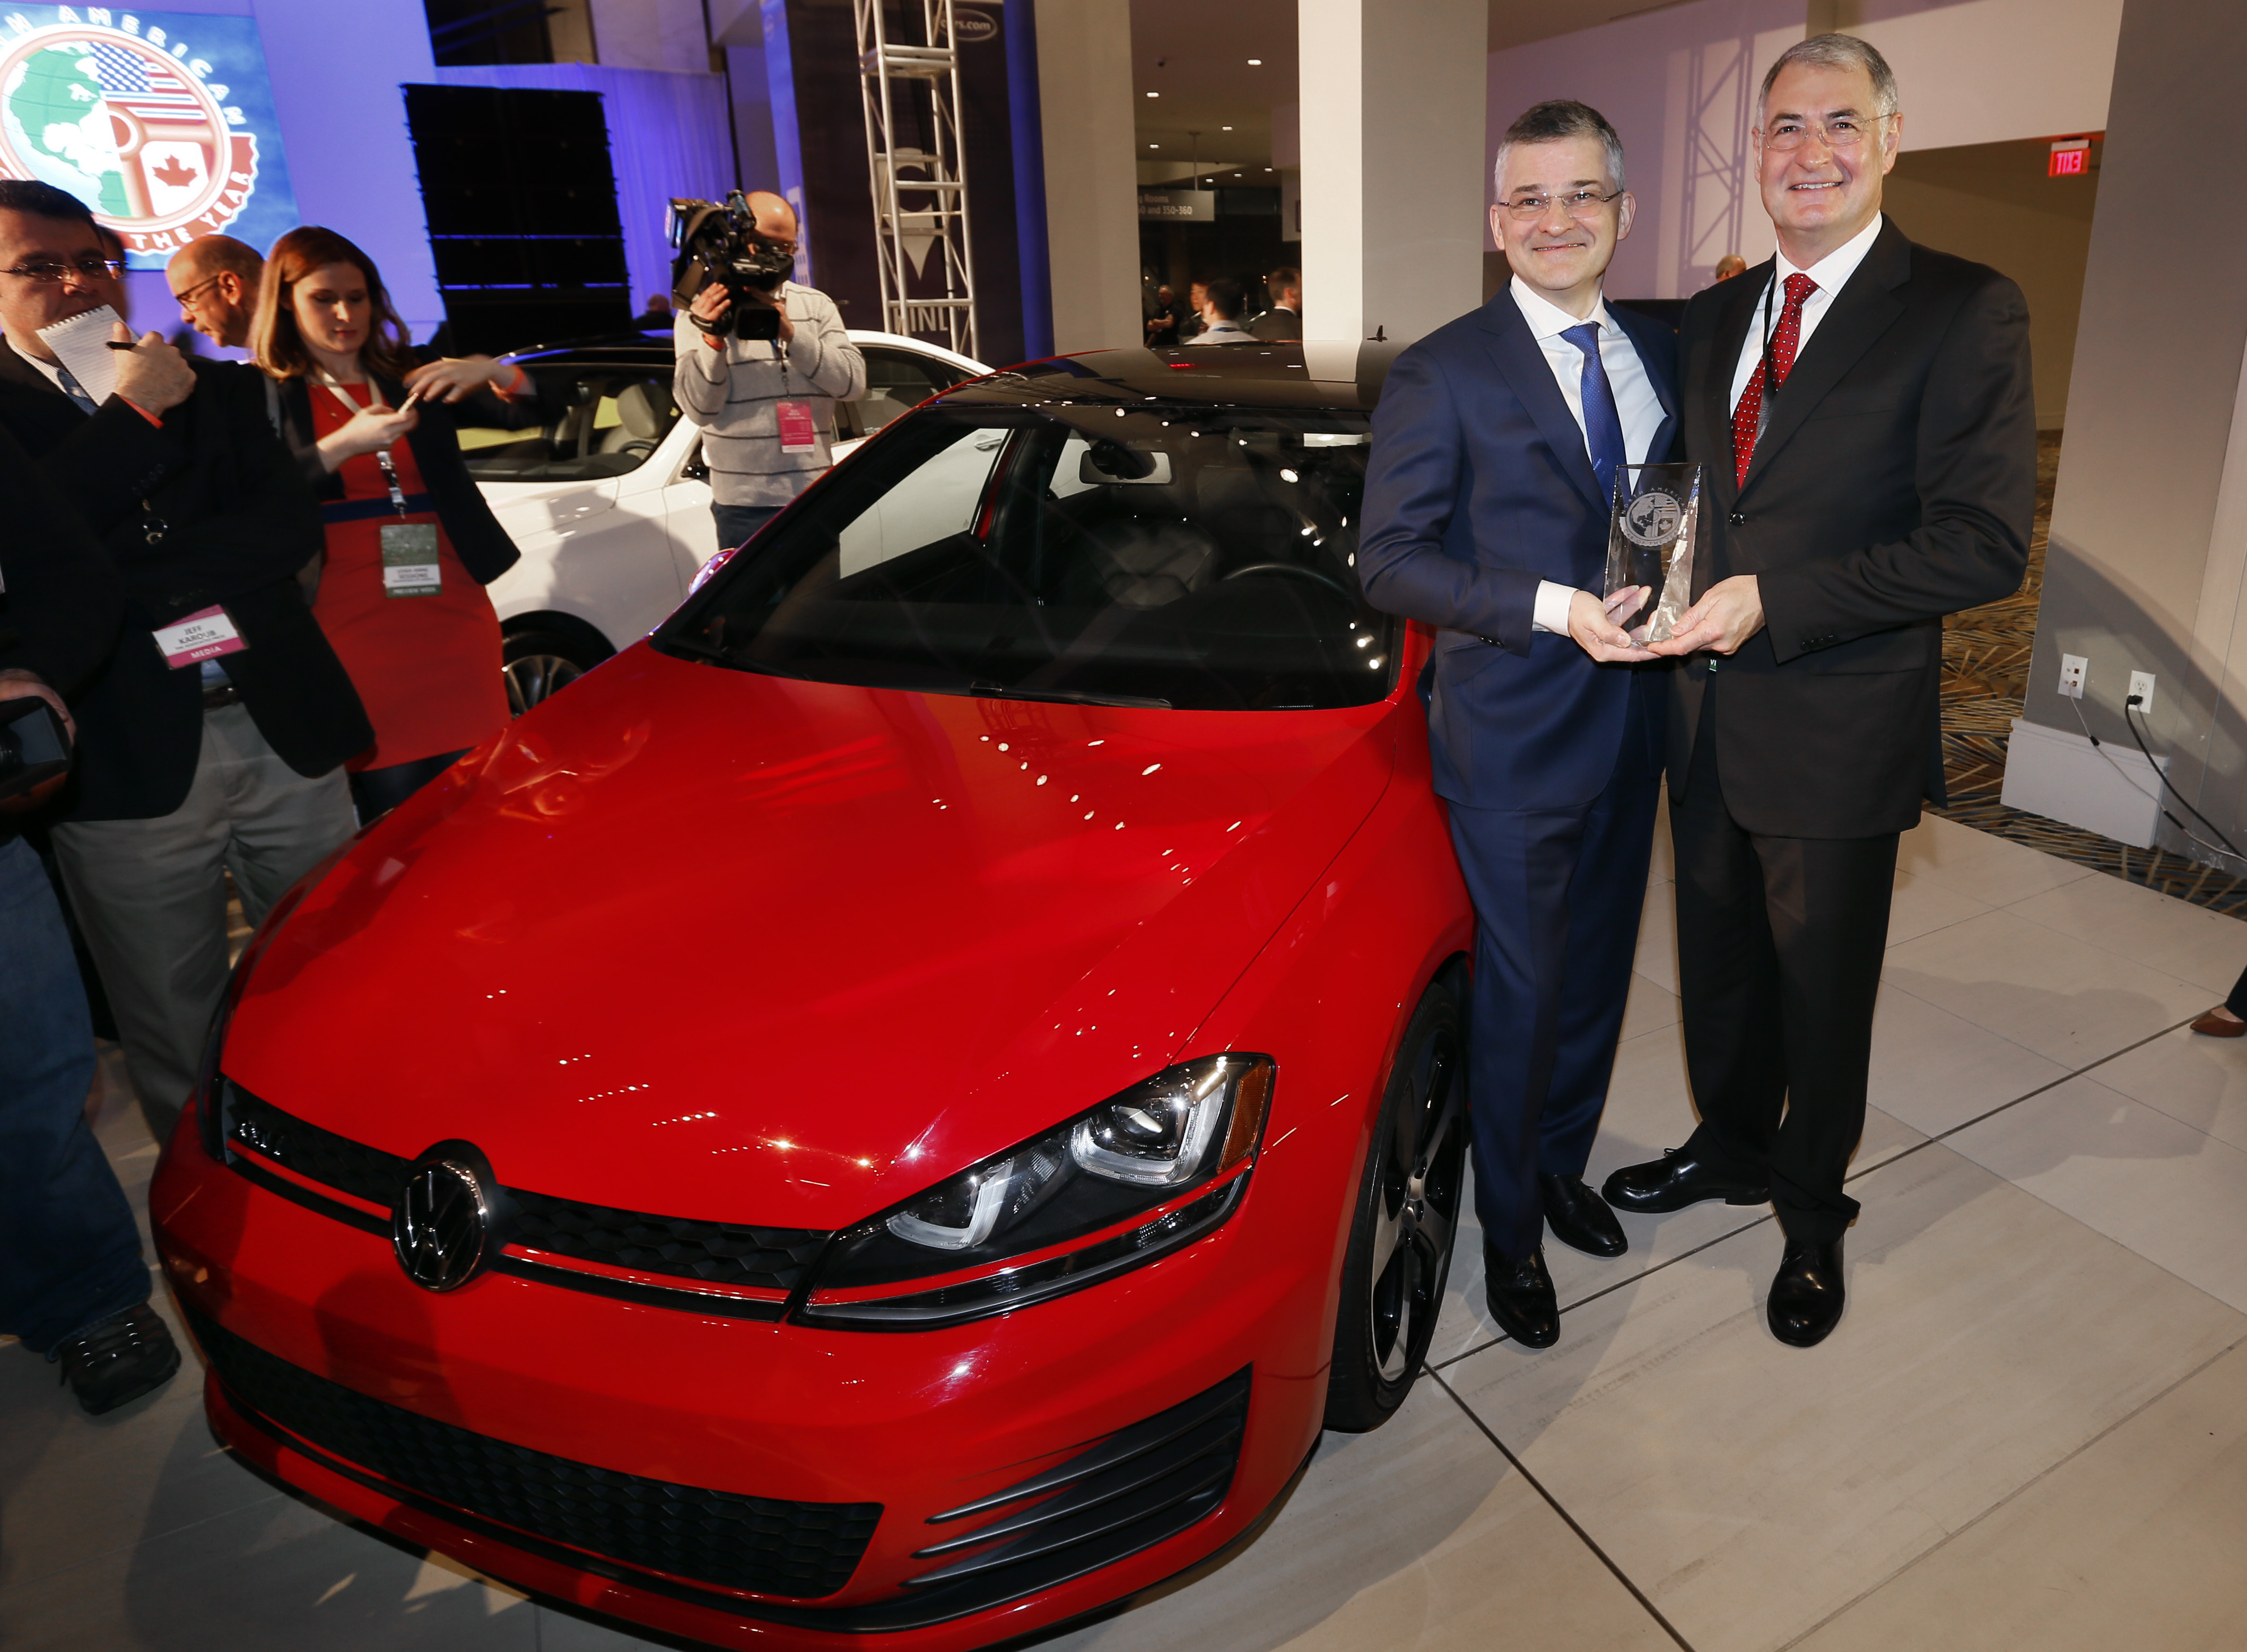 Volkswagen Ford Take Top Awards At Detroit Auto Show